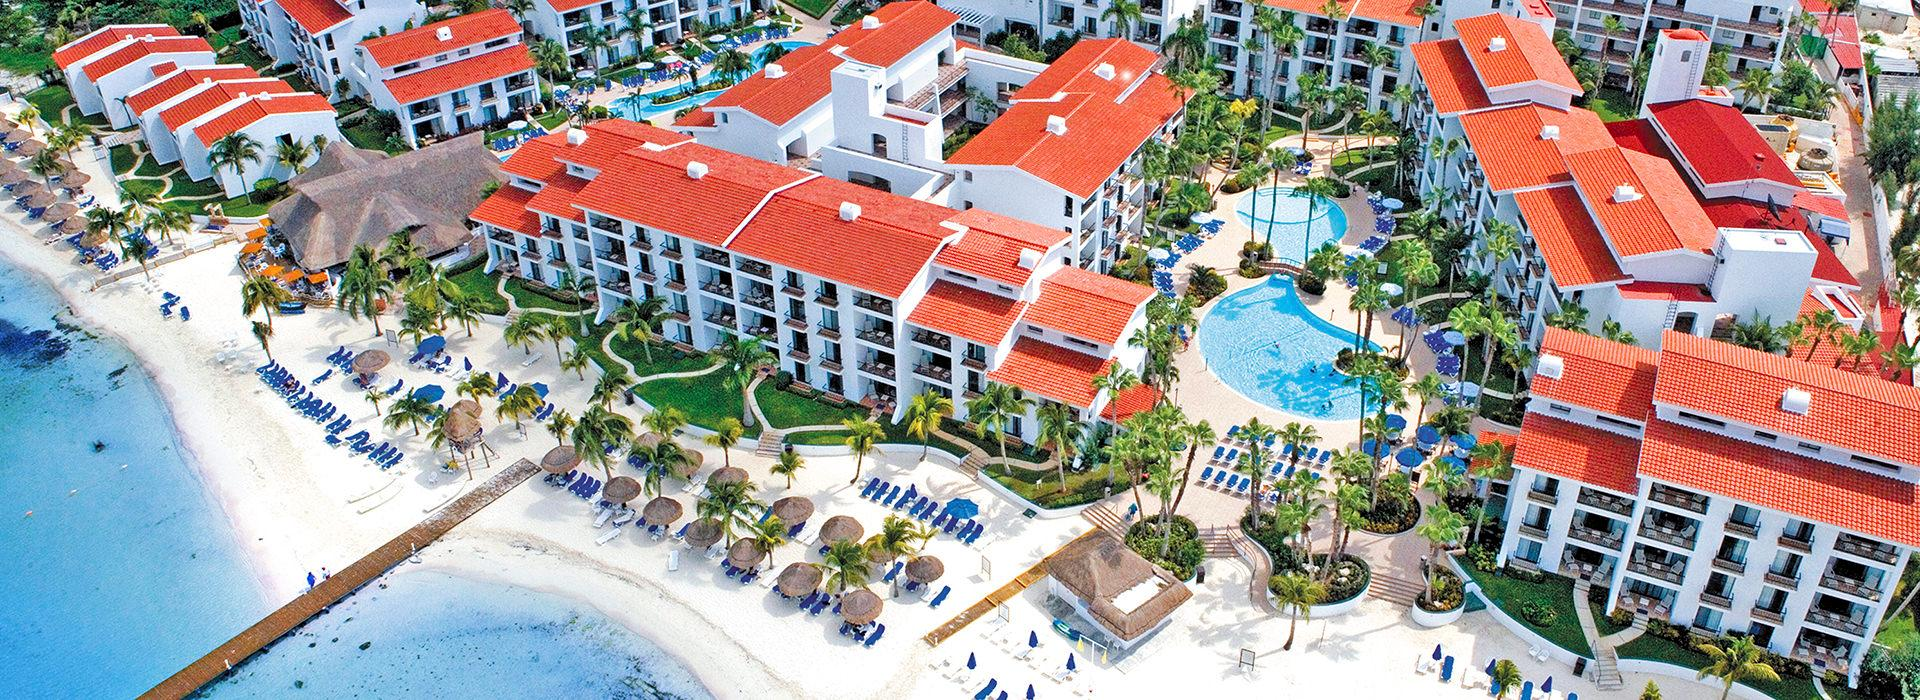 The Royal Cancun - All Suites Resort